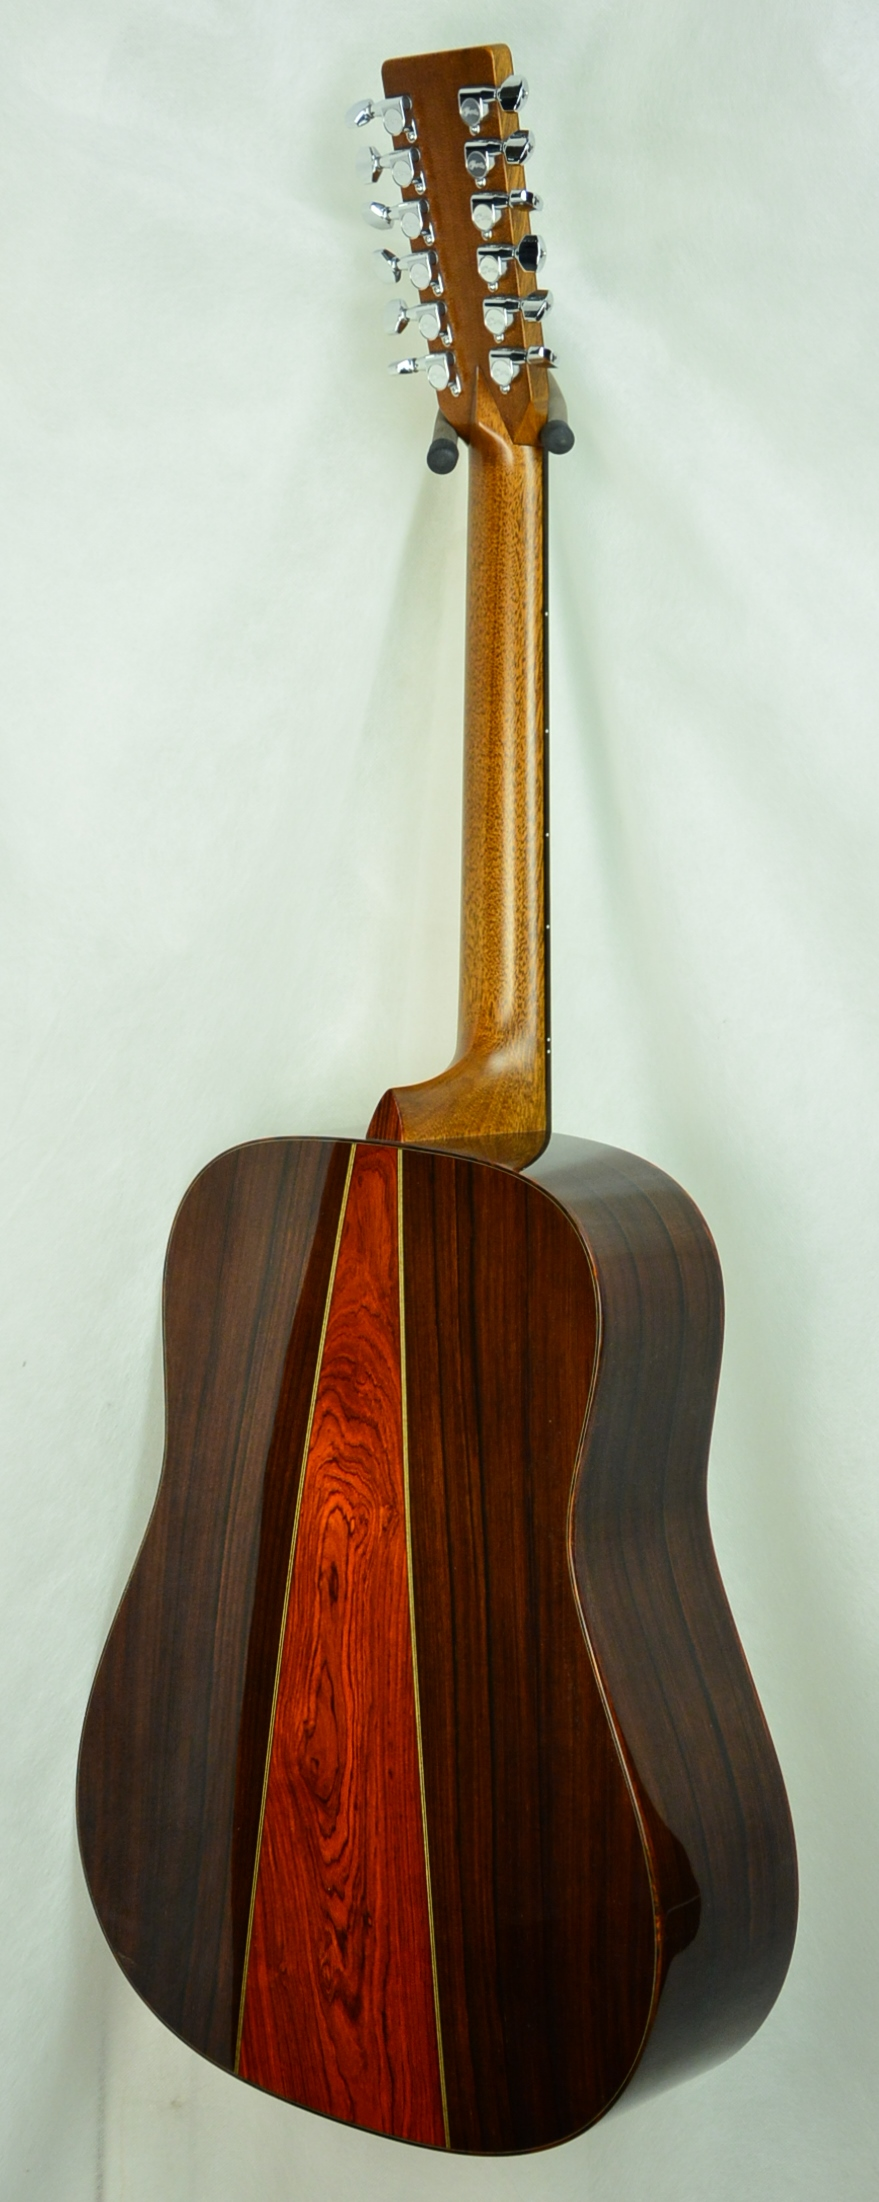 Q-2648424 S-1928831 D12-35 Guatemalan w-Cocobolo Wedge Sitka VTS (2).JPG